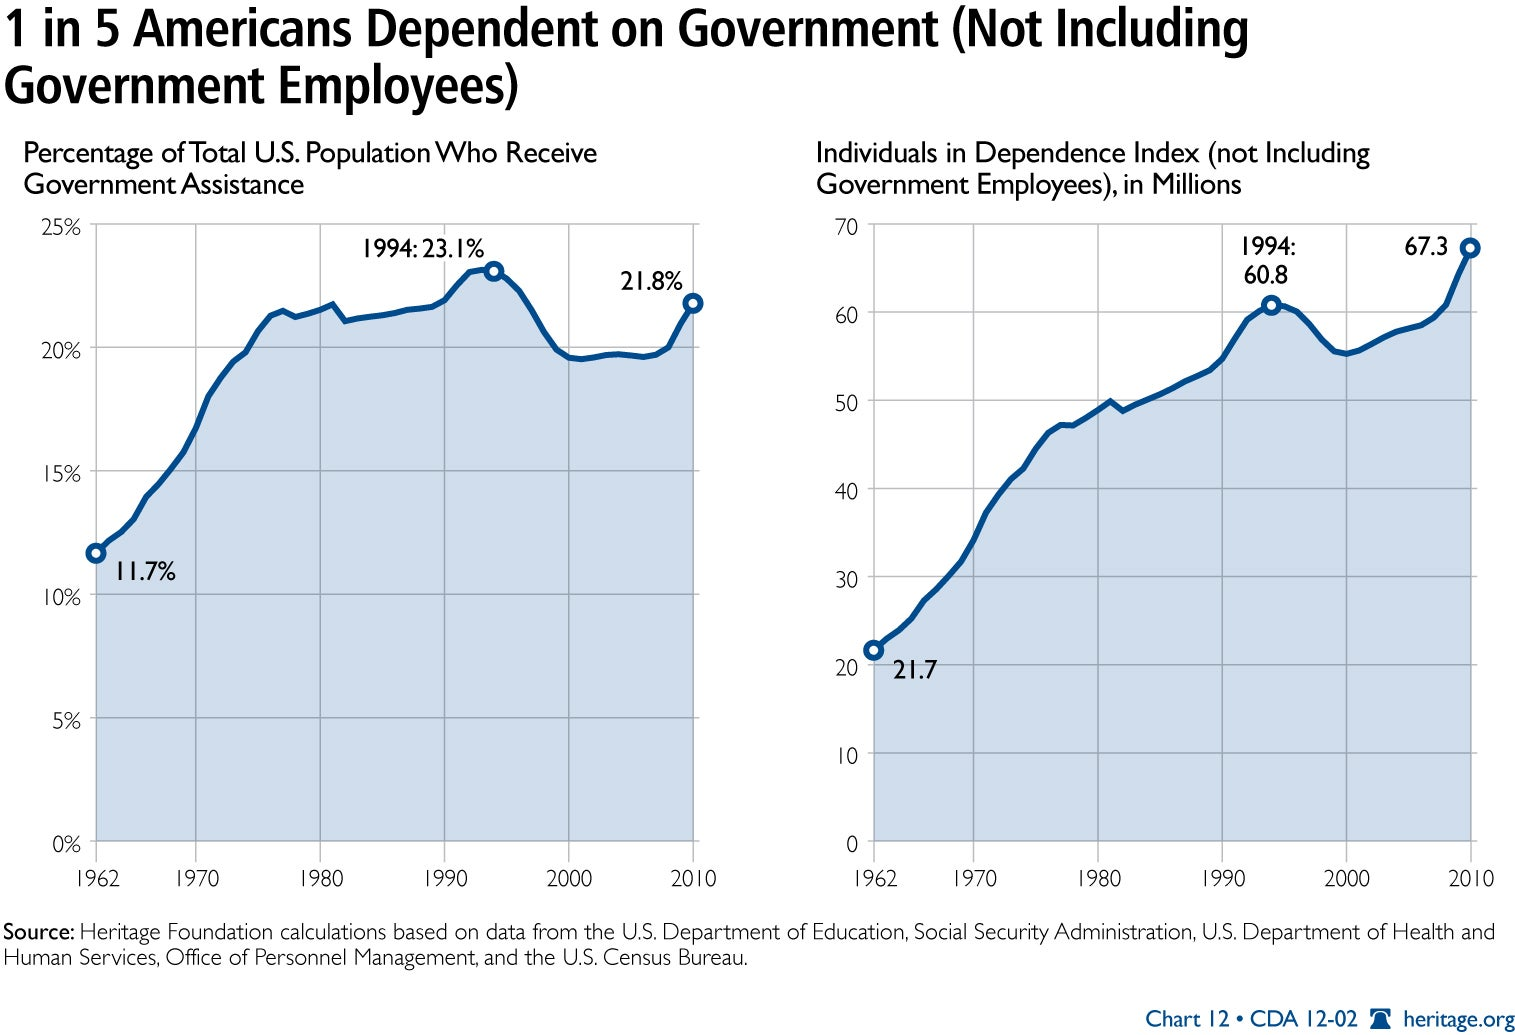 1 in 5 Americans Dependent on Government (Not Including Government Employees)